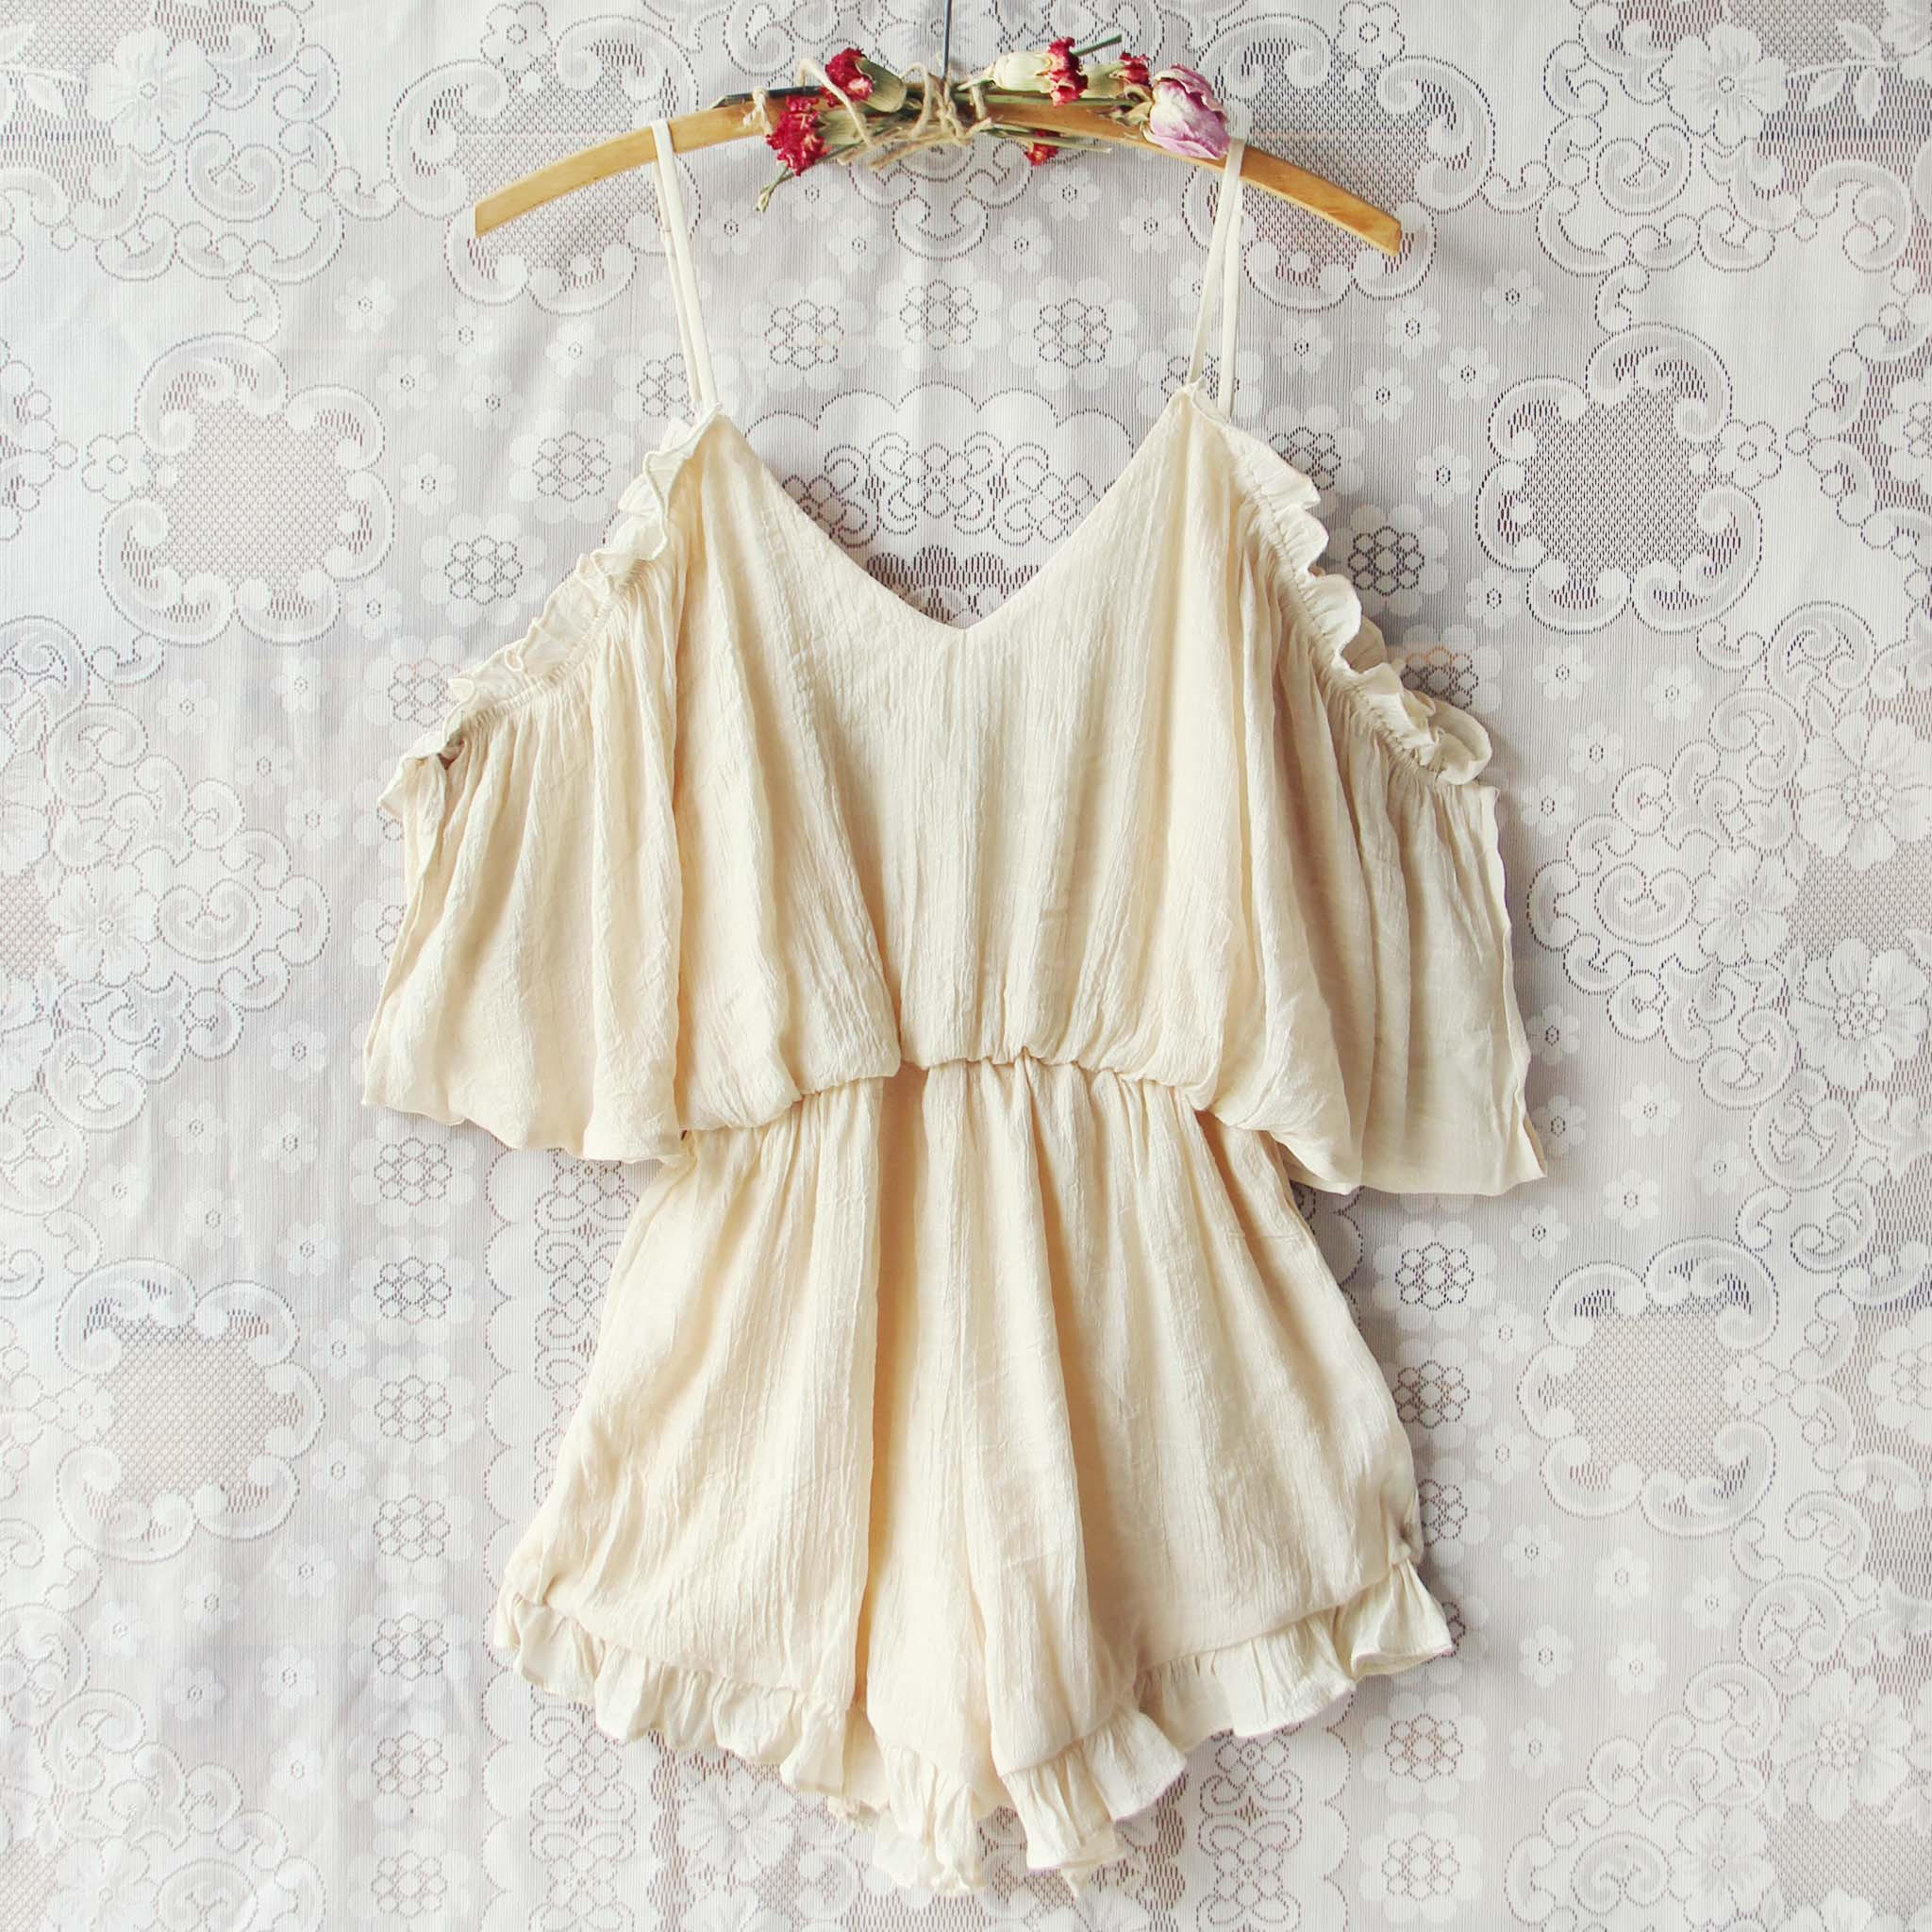 Image of The Drifter Romper in Cream